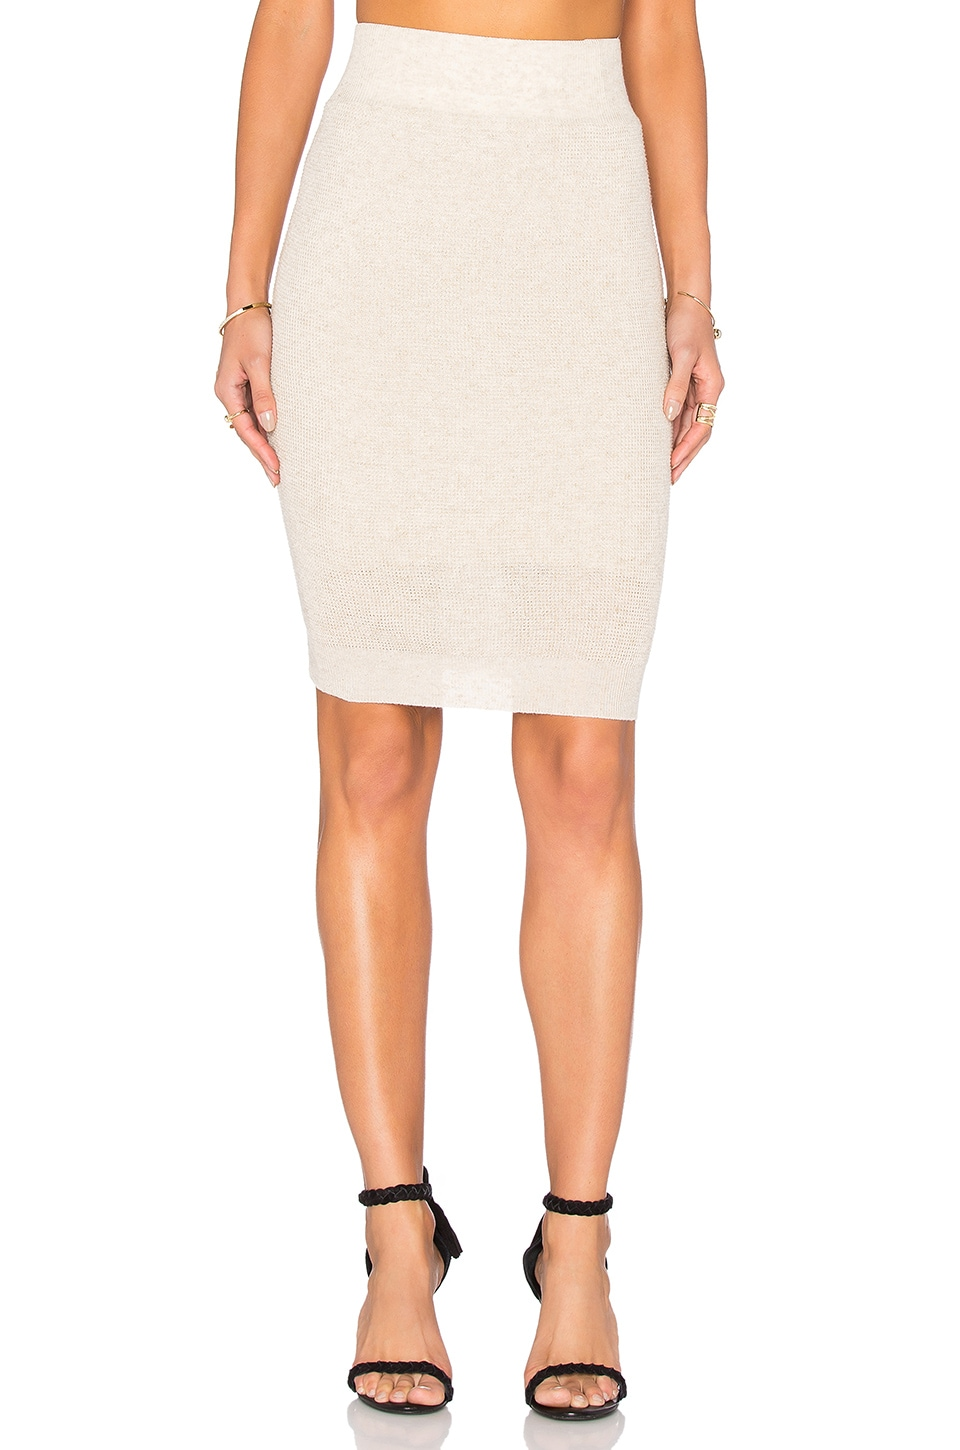 Callahan Pencil Midi Skirt in Cream